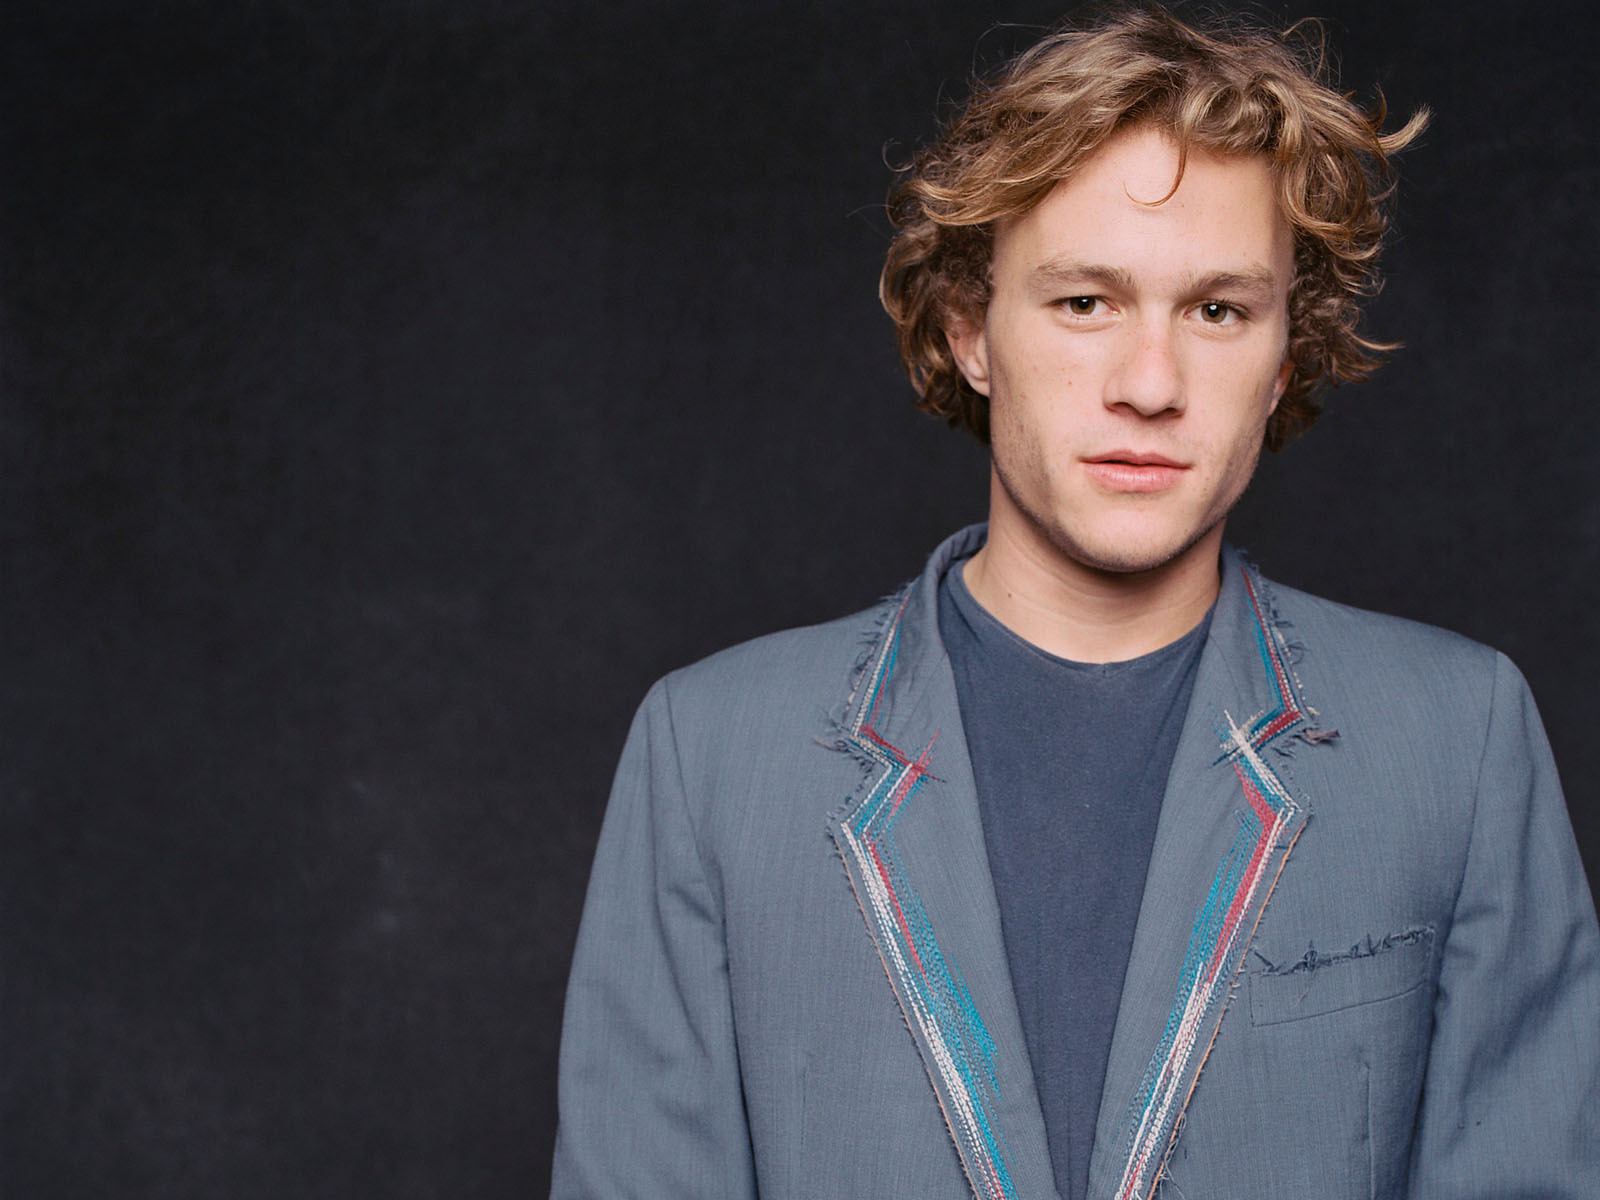 Frithst nothing 39 s to me as beautiful as you - Heath ledger pics ...